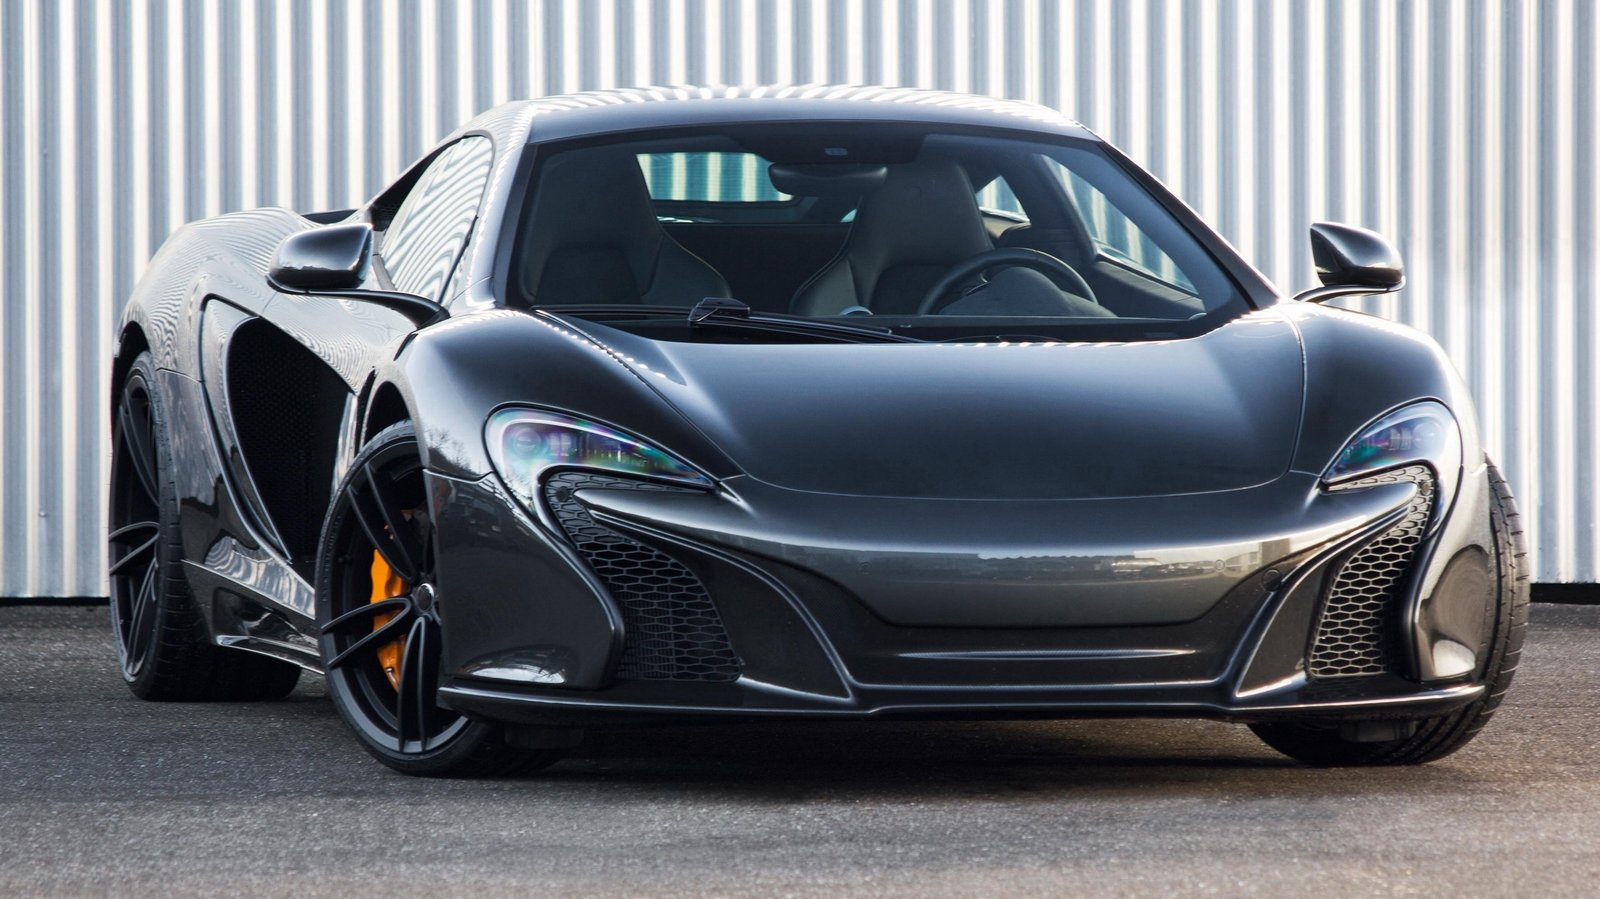 2016 mclaren 650s by gemballa picture 672640 car review top speed. Black Bedroom Furniture Sets. Home Design Ideas